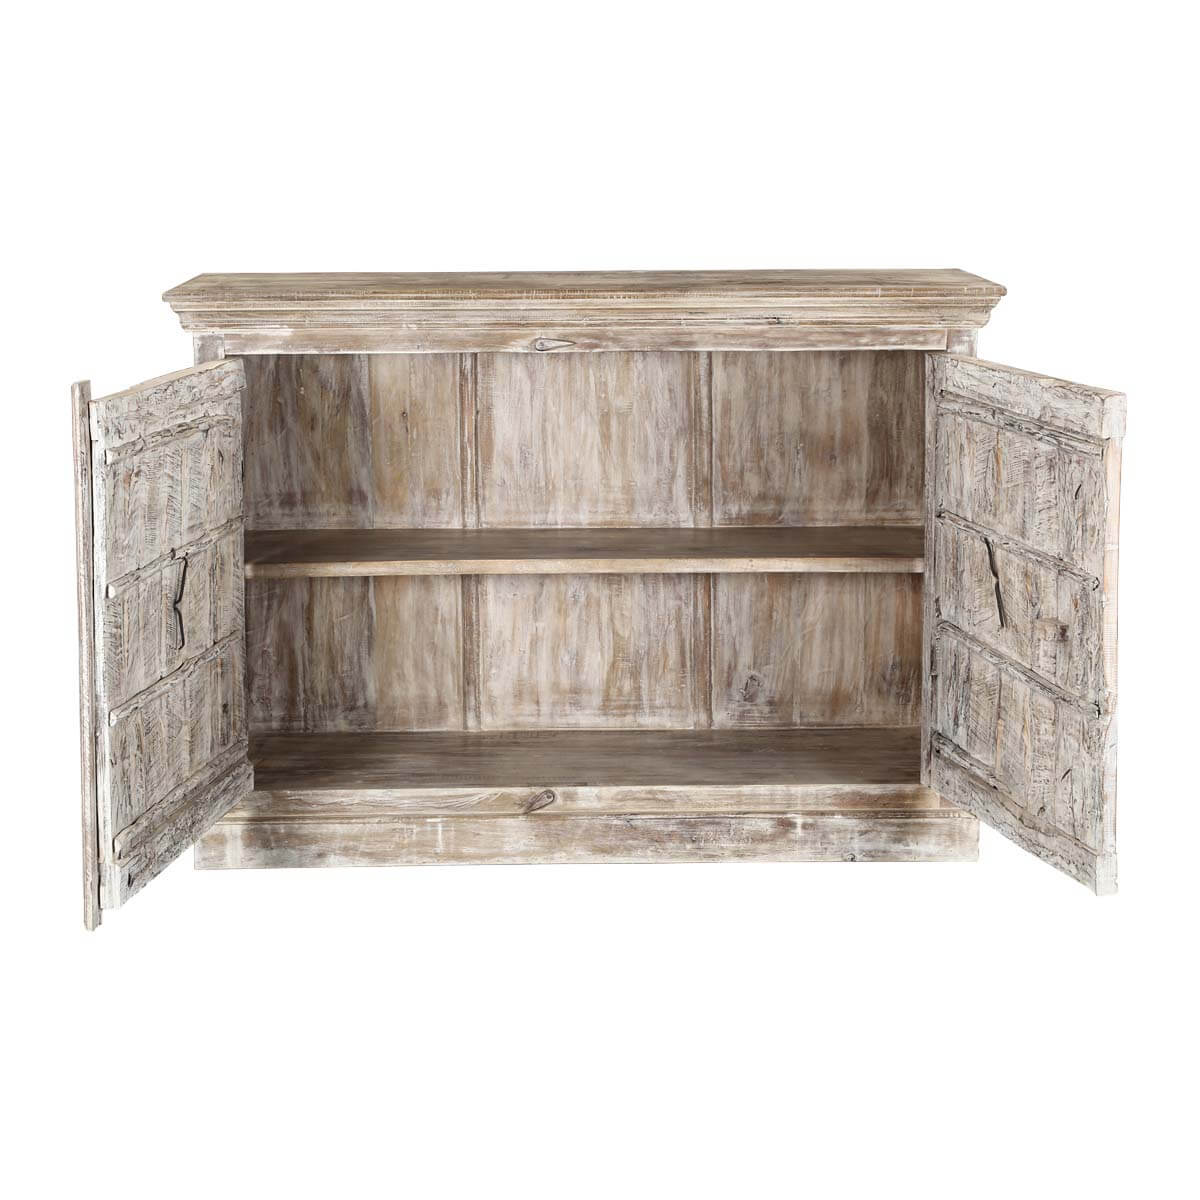 Palazzo 55 Light Brown Rustic Dining Sideboard Cabinet